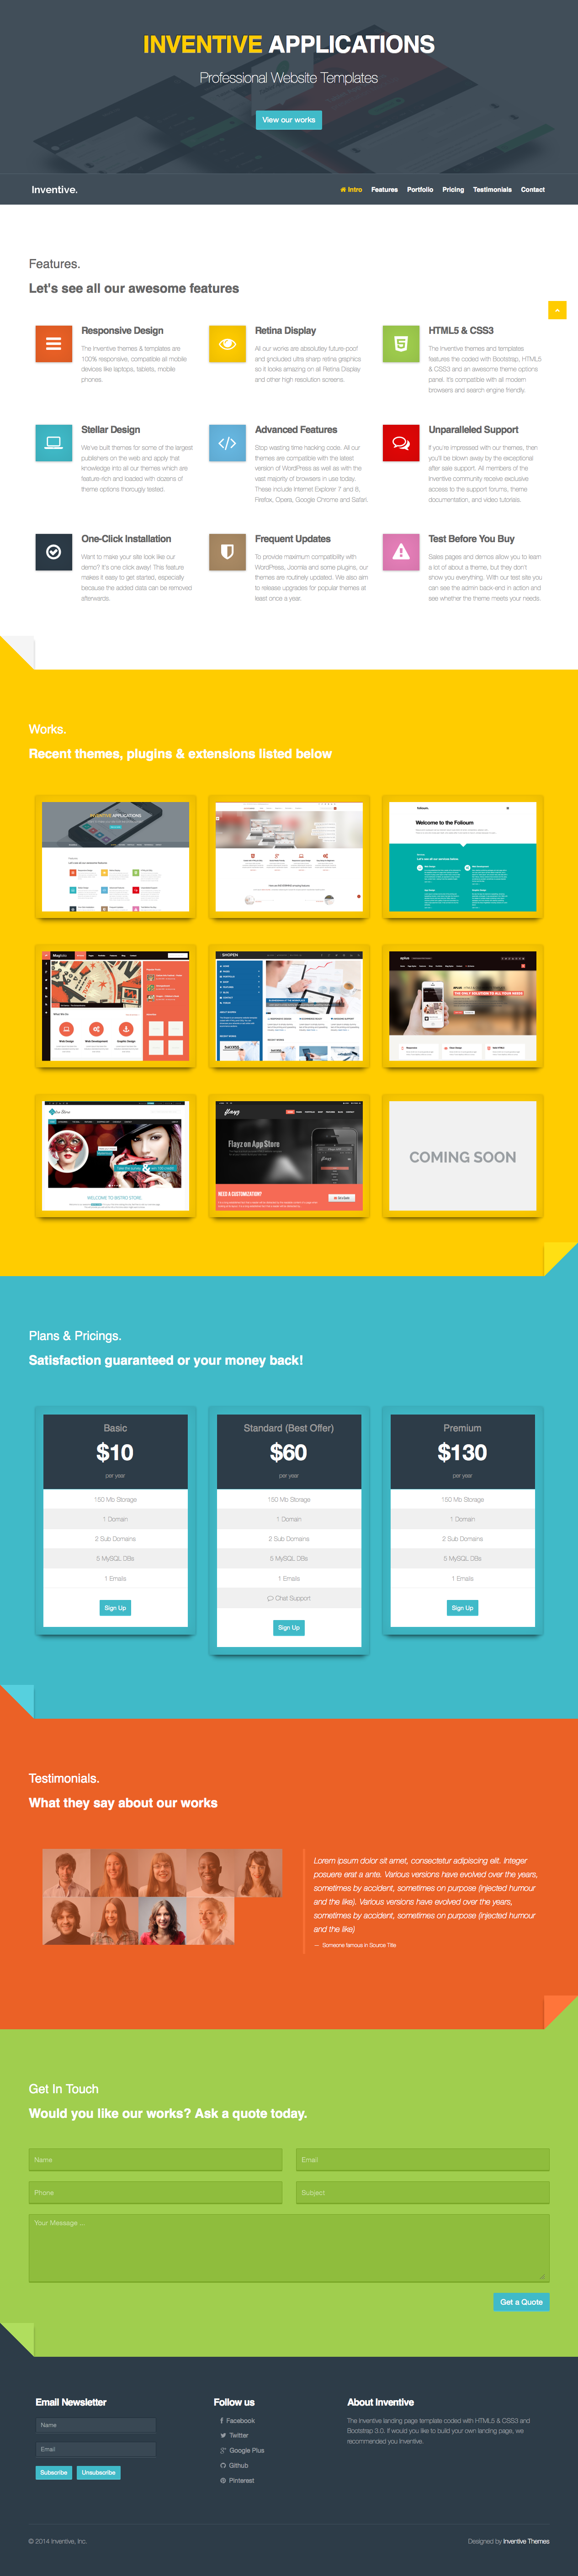 Inventive - Retina Landing Page Template